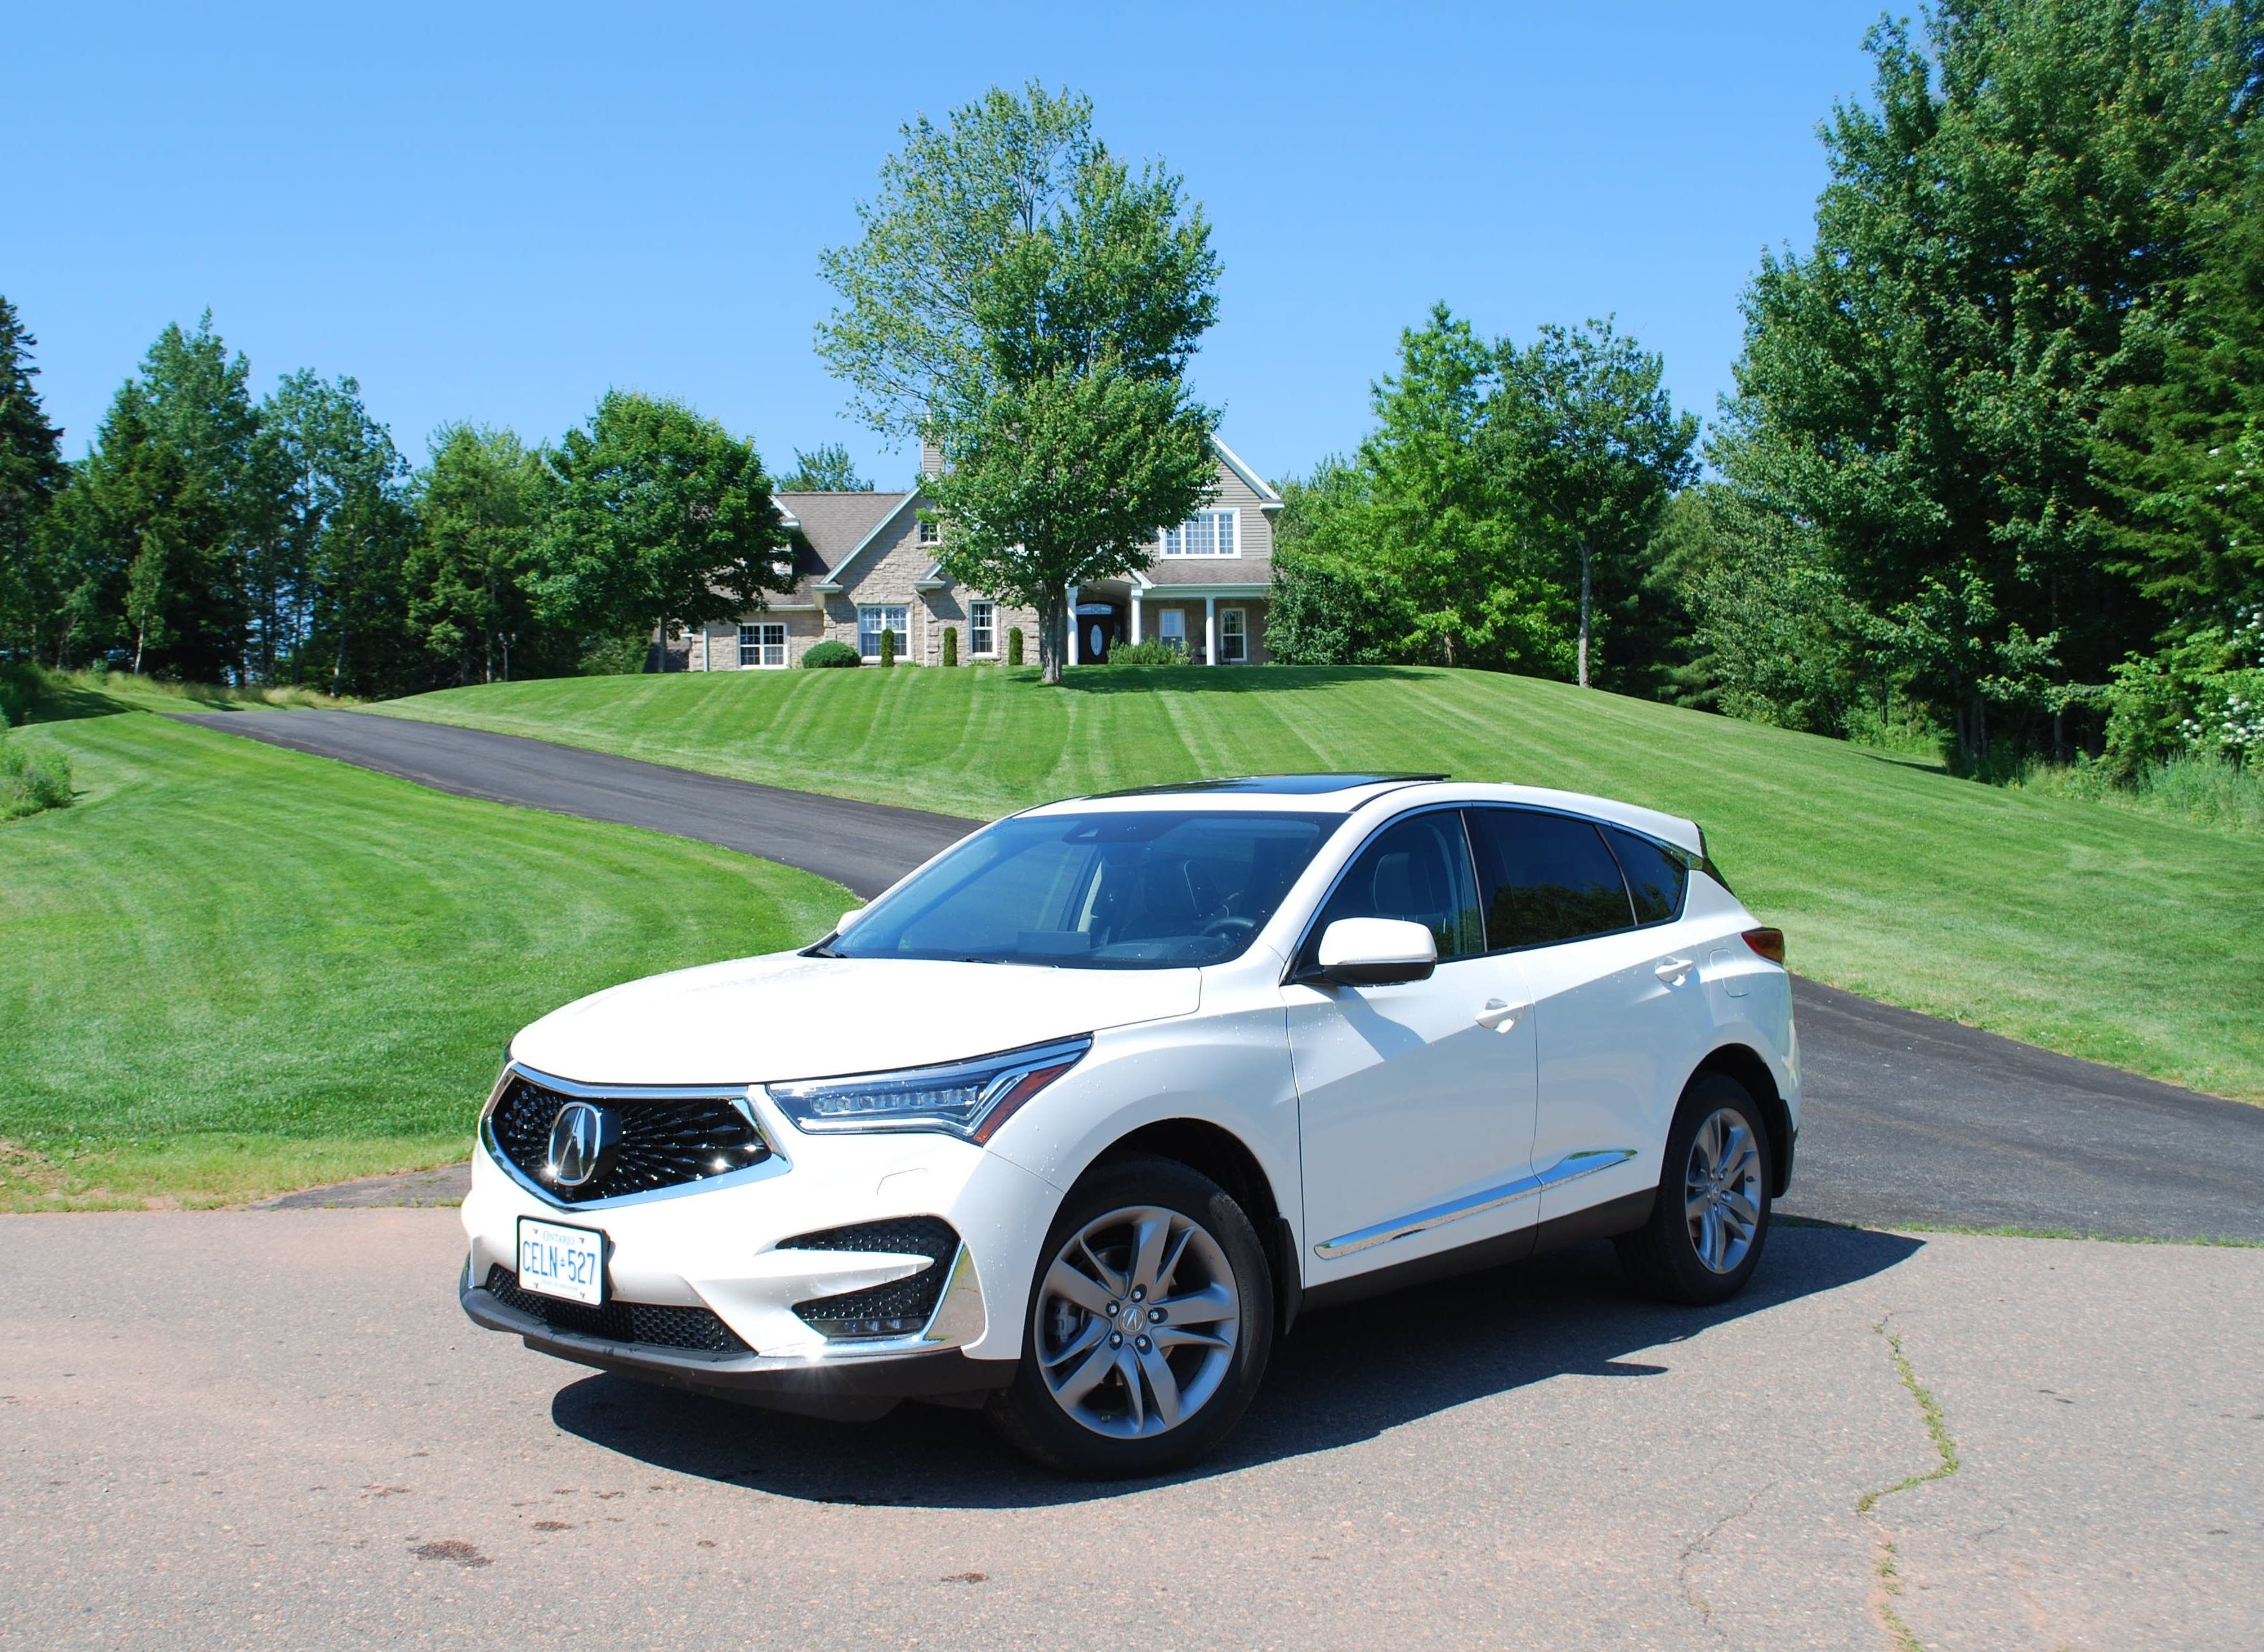 2019 Acura Rdx Release Date Price And Review Acura Rdx Acura Car